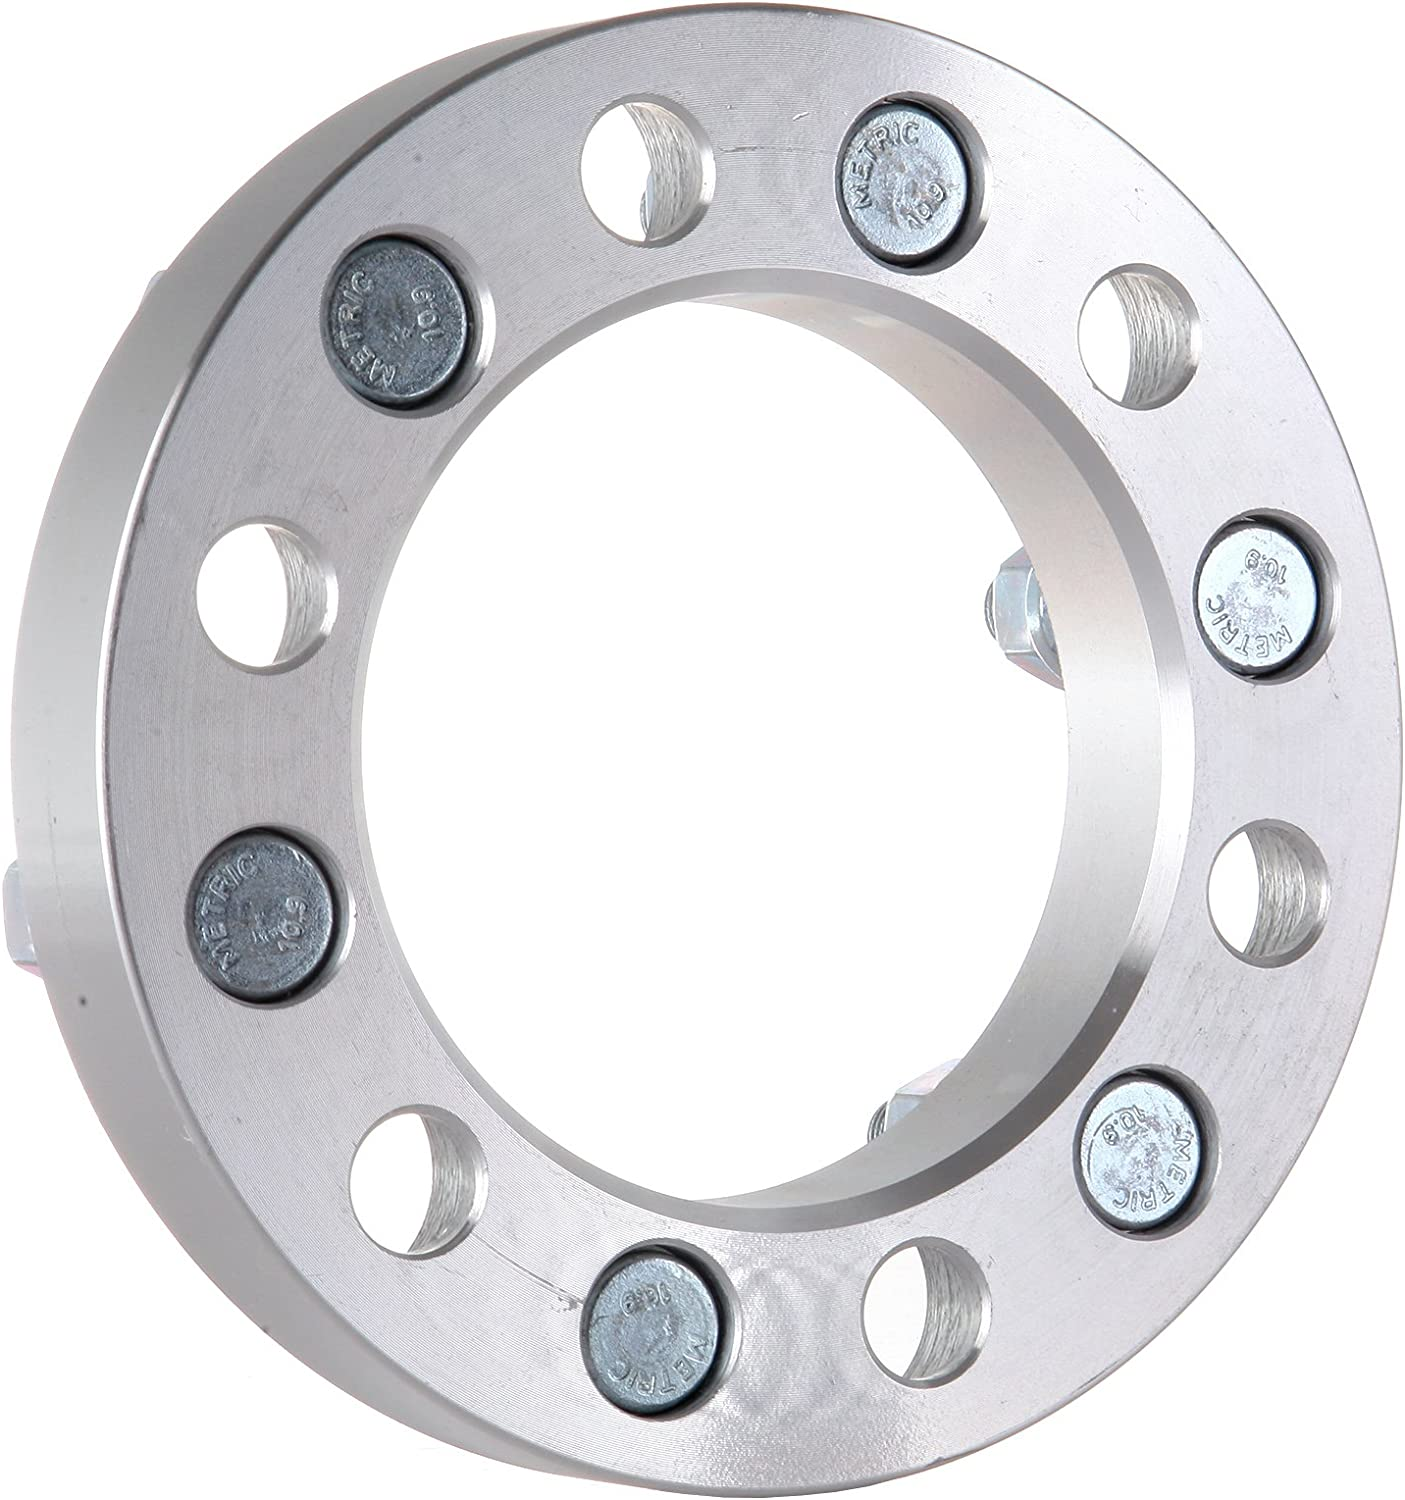 cciyu 4set 6 lug Wheel Spacers 1 inch 25mm 6x5.5 to 6x5.5 6x139.7mm to 6x139.7mm Adapters Bolt On 12x1.25 Studs fit for 1995-1997 Nissan Pickup Pathfinder Trucks